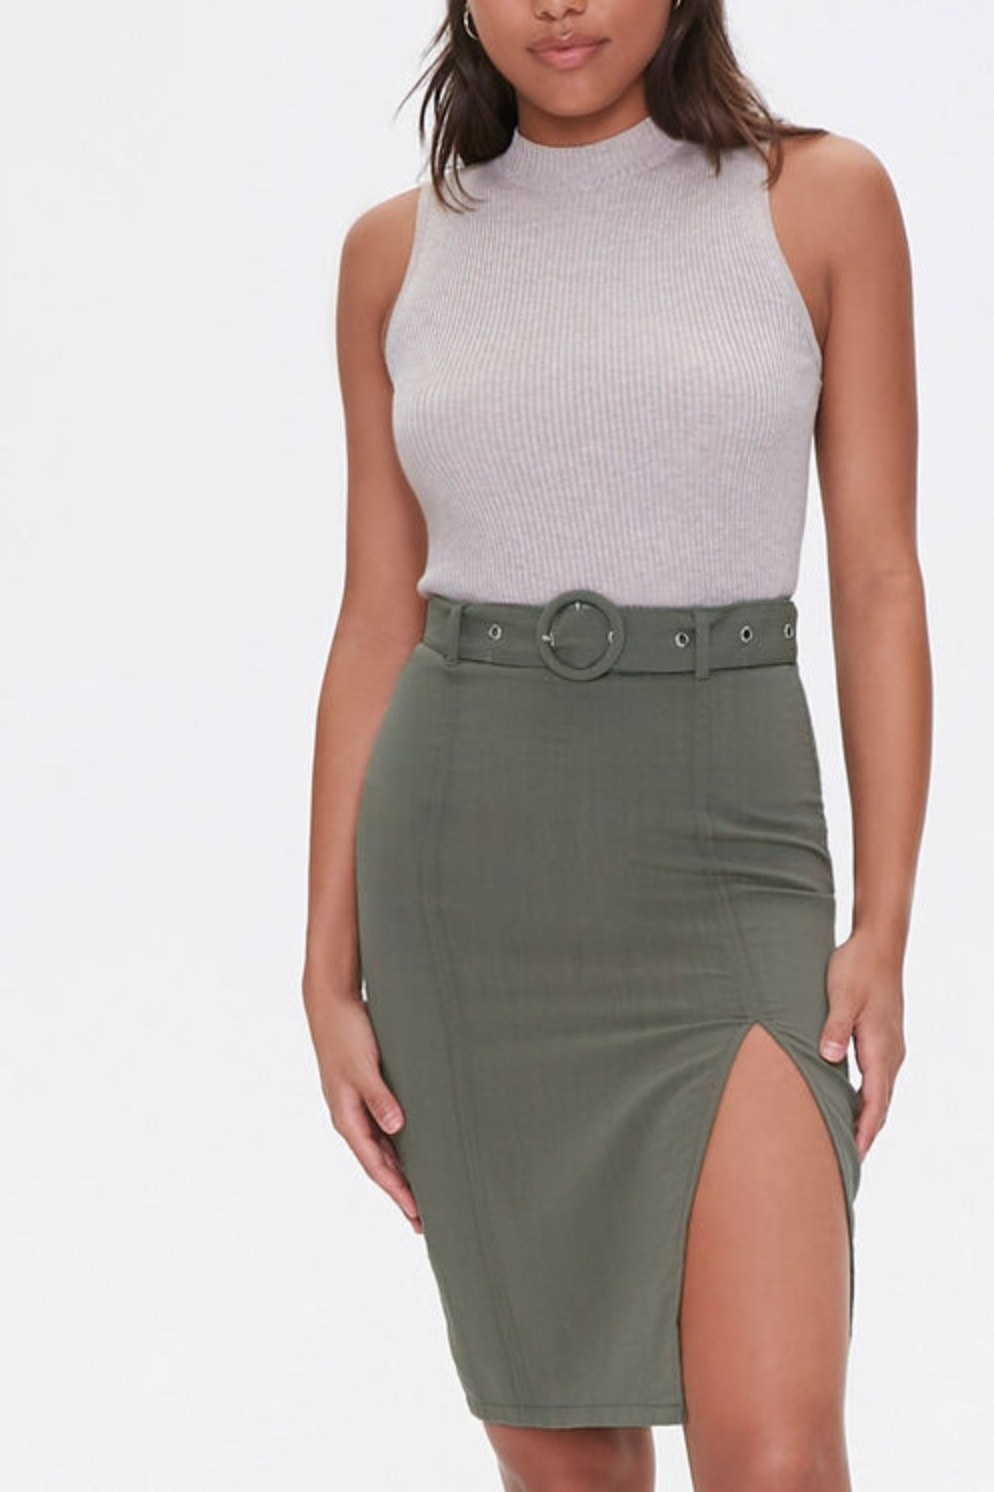 Model wearing the skirt in olive